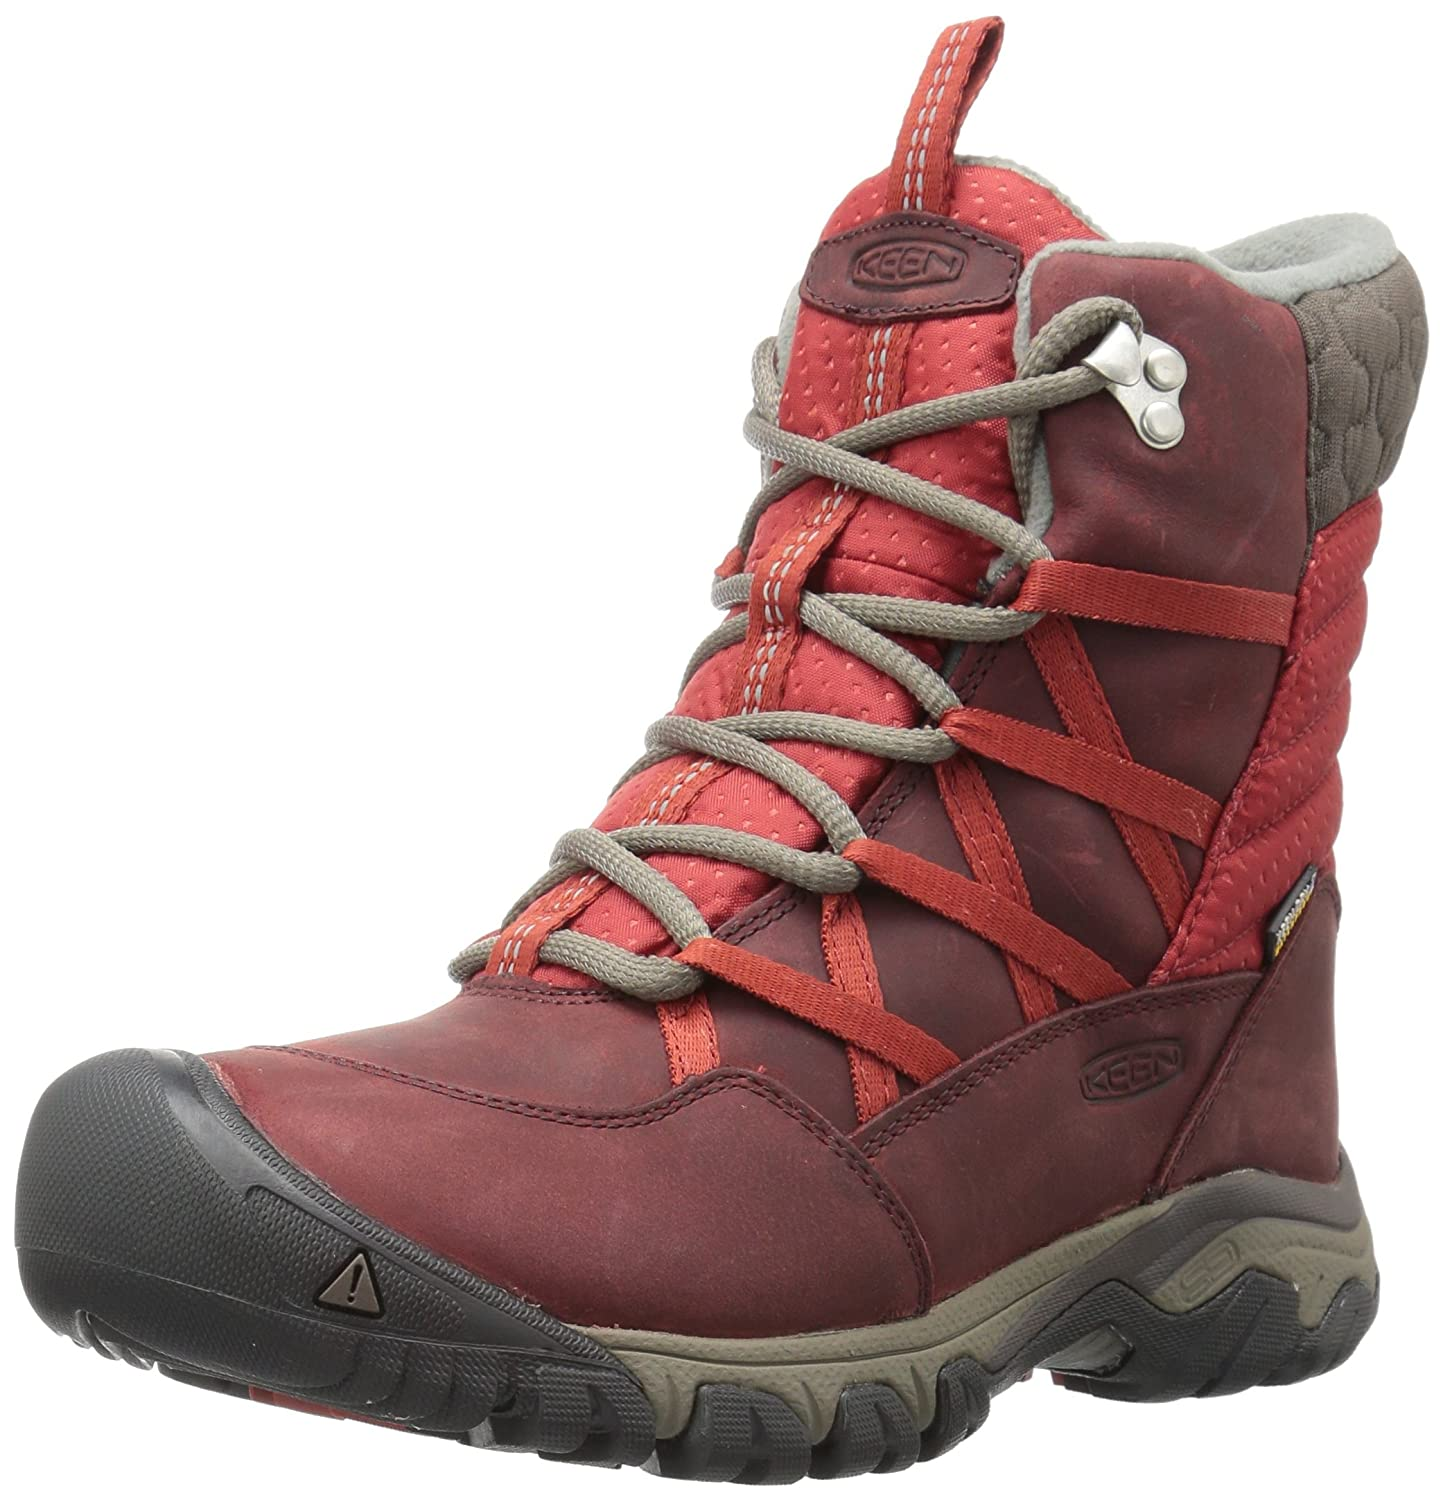 3b5ee75be4f3 KEEN KEEN KEEN Women s Hoodoo III Lace up-w Snow Boot B01MXMPPB1 6.5 ...